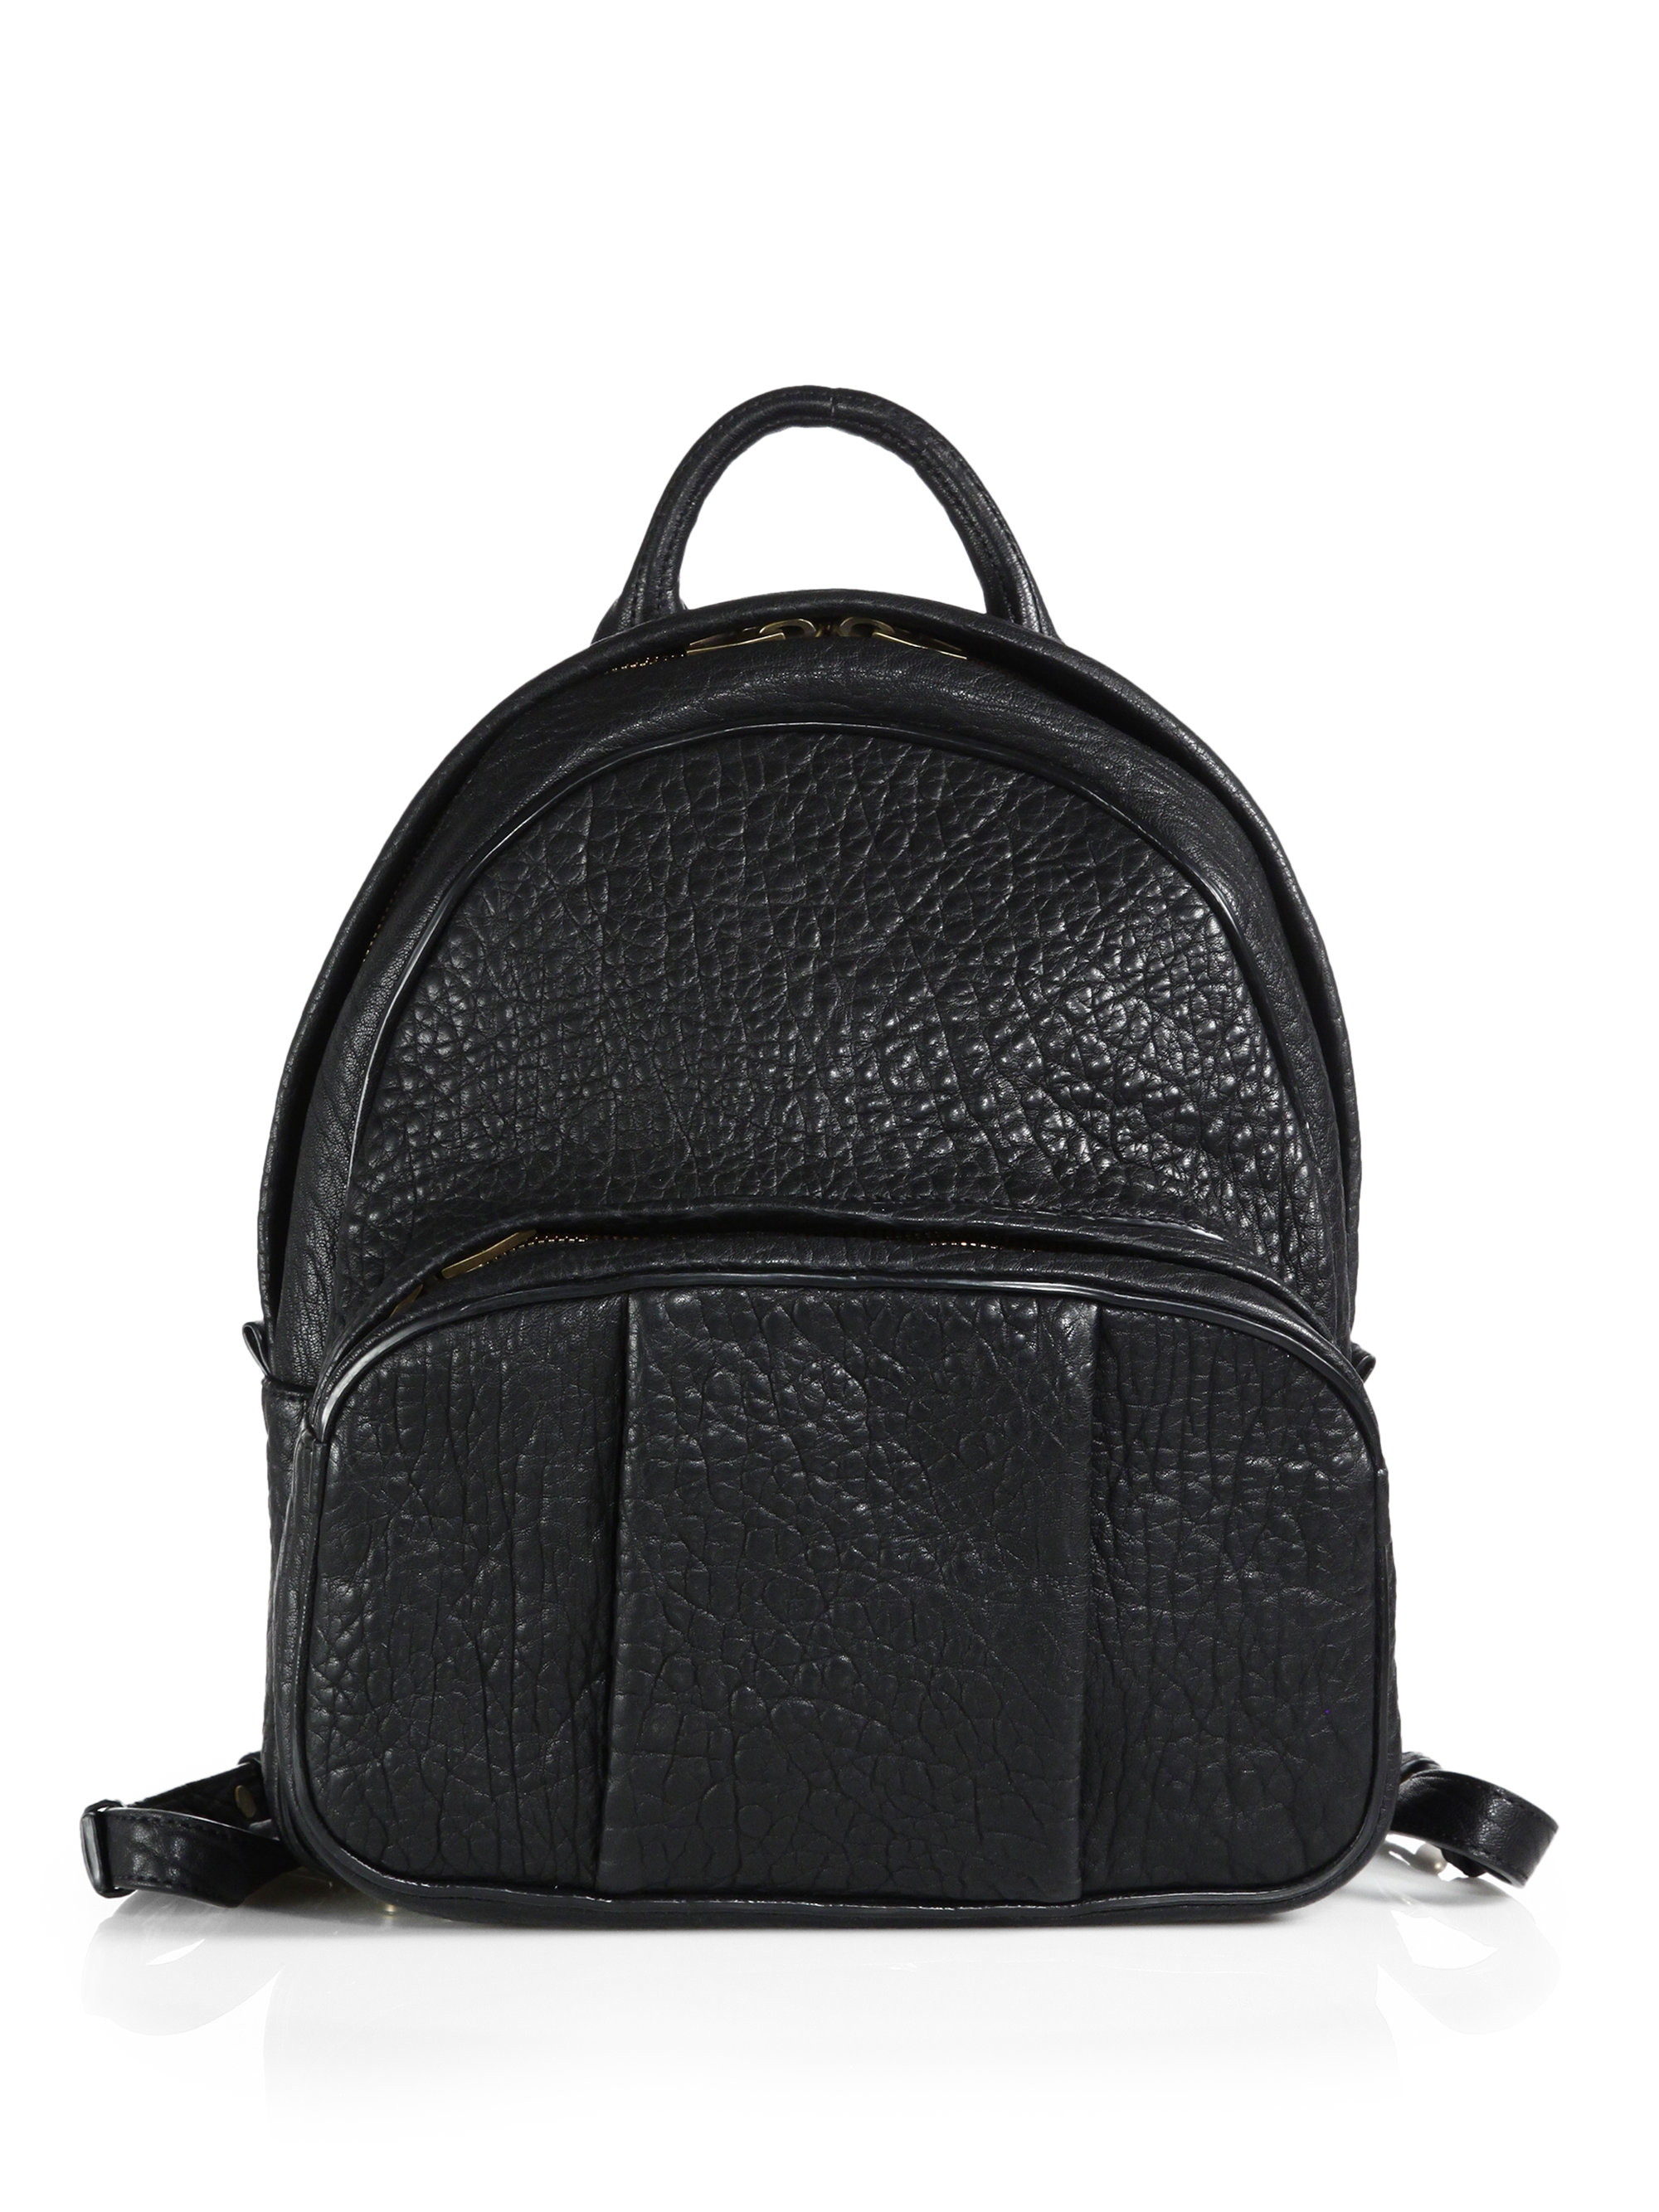 Leather Backpacks For Sale T4qZQk8l